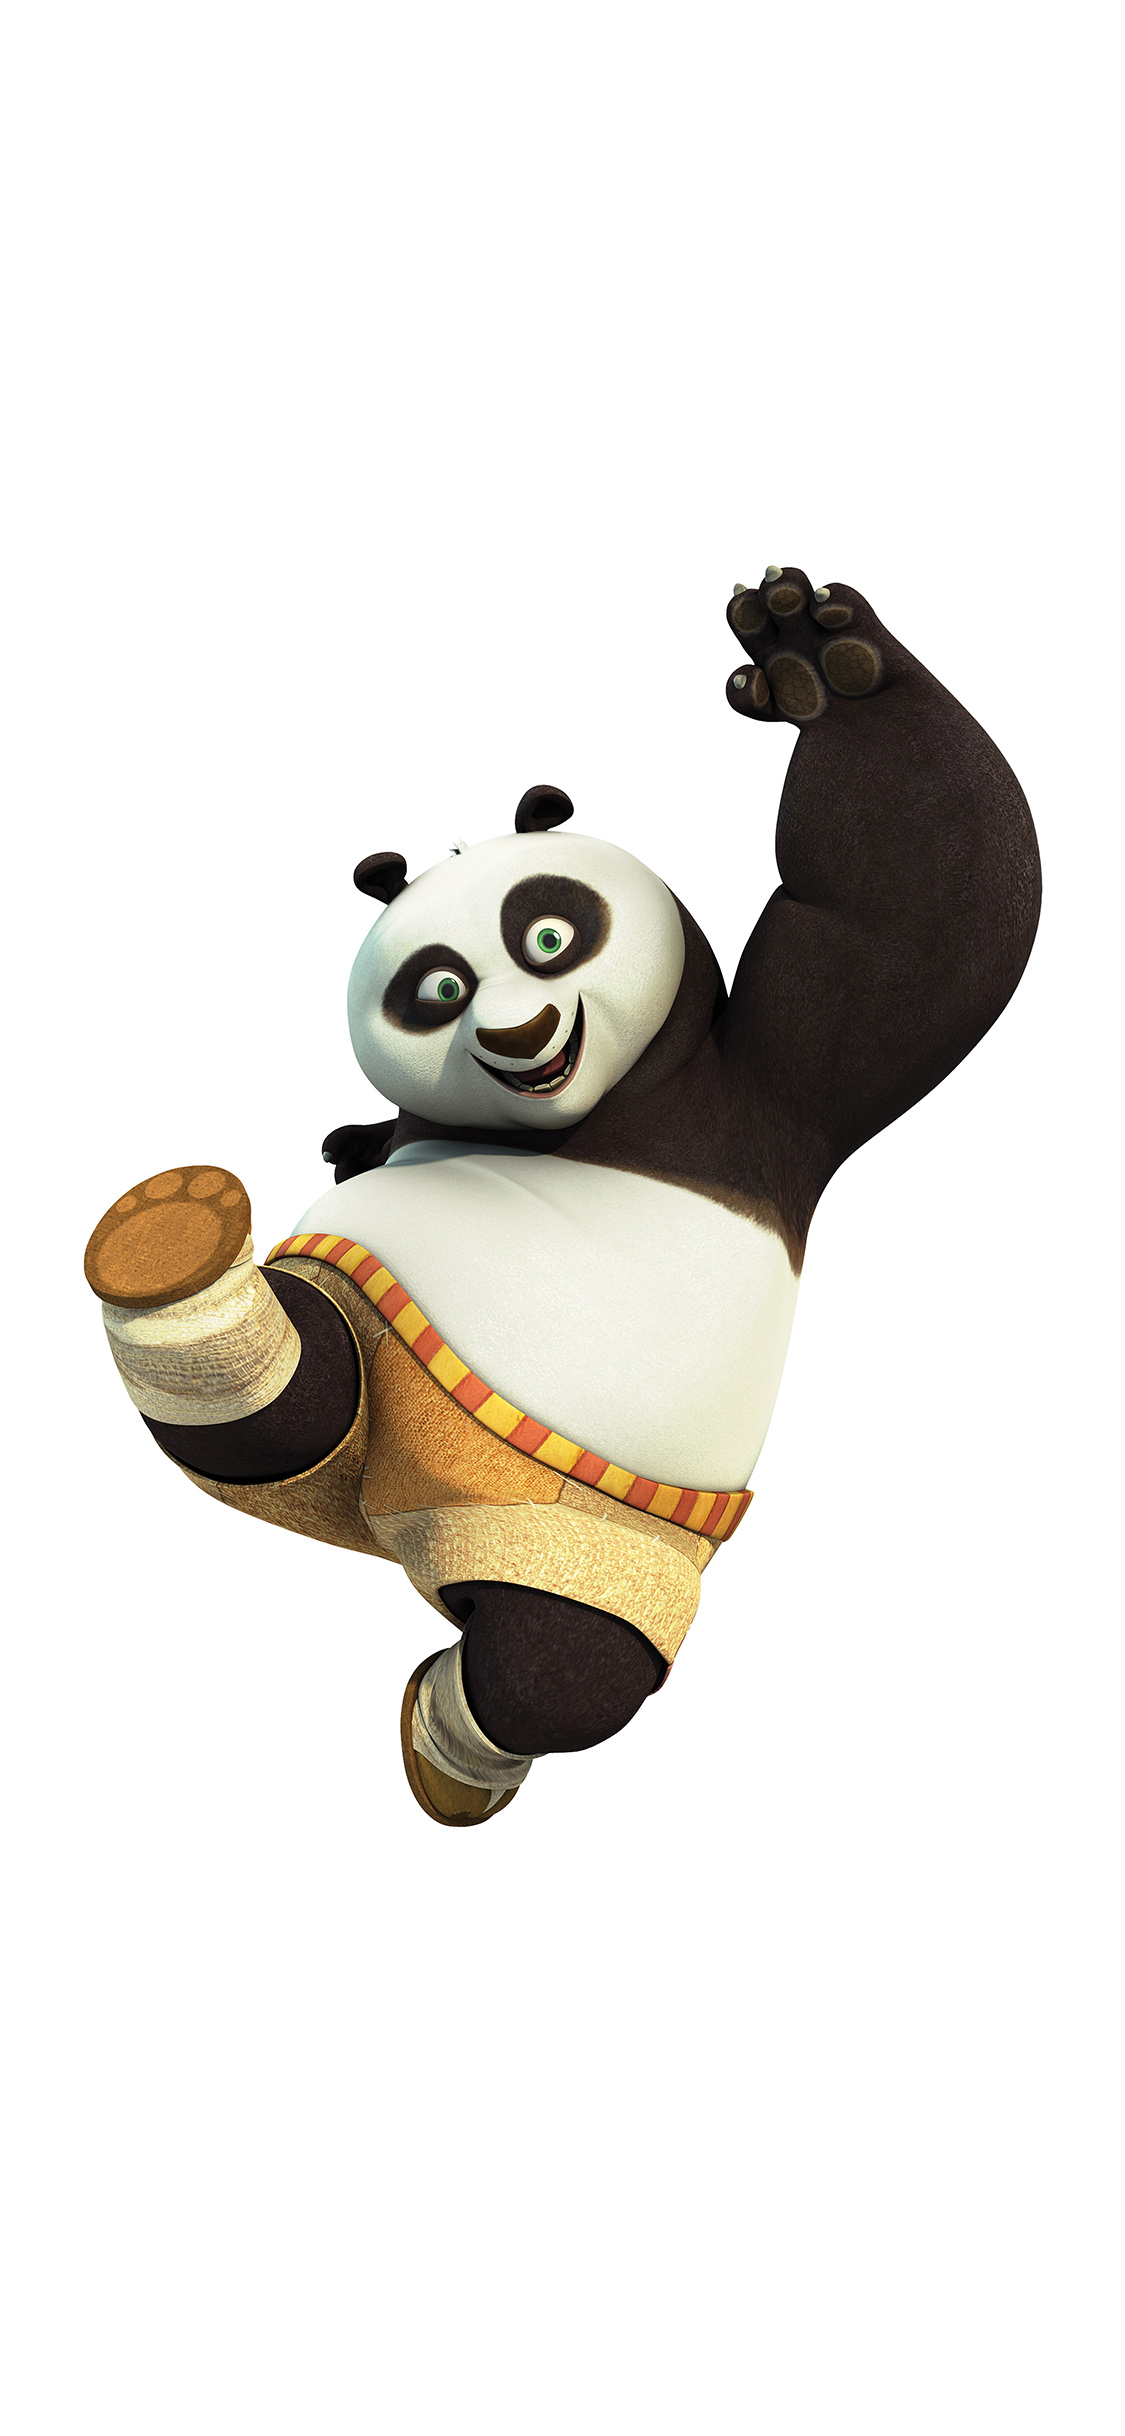 iPhoneXpapers.com-Apple-iPhone-wallpaper-an53-kungfu-panda-animal-dreamworks-kick-cute-anime